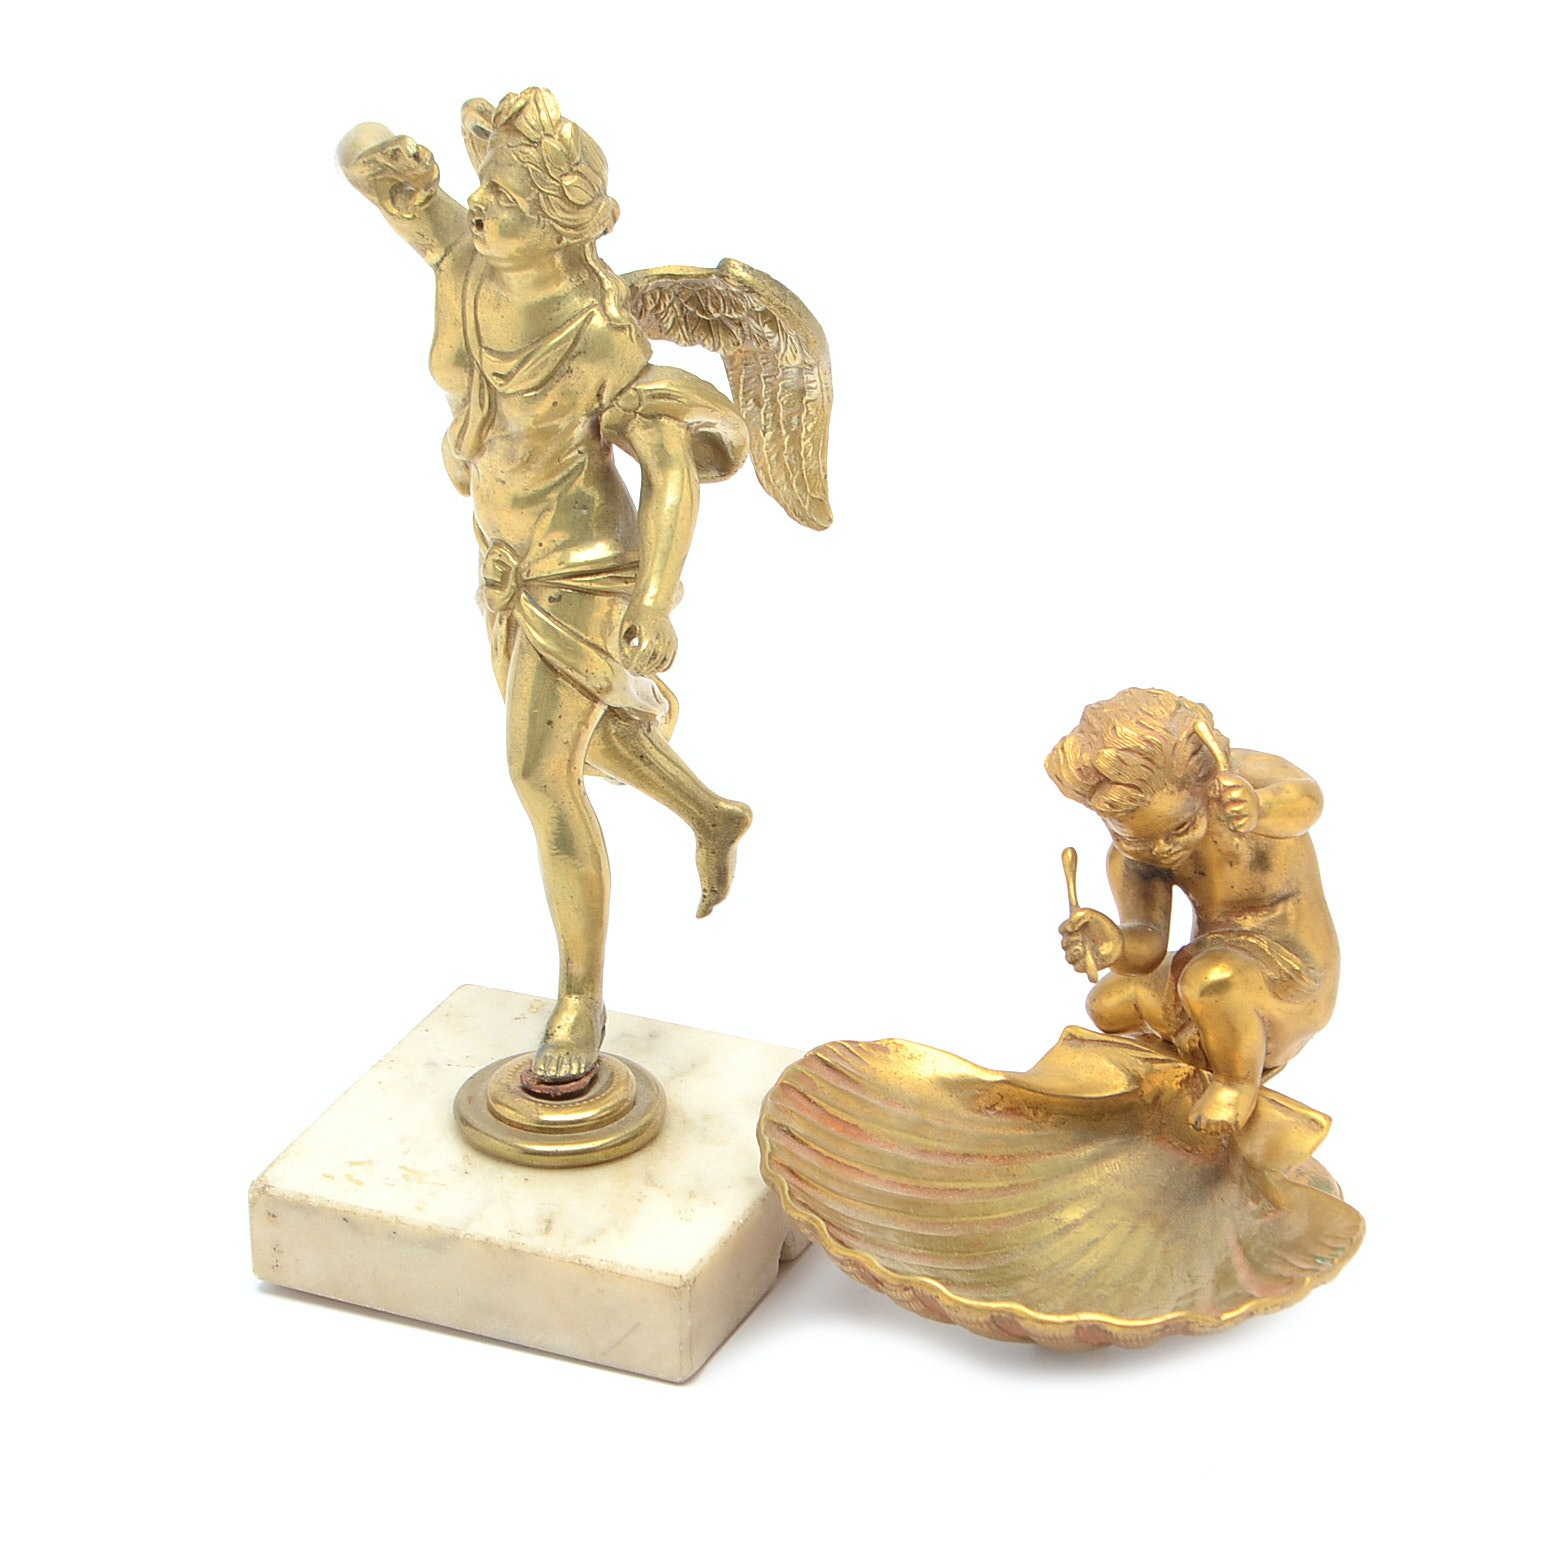 Bronze Putti with Scallop Shell and Winged Figure on Marble